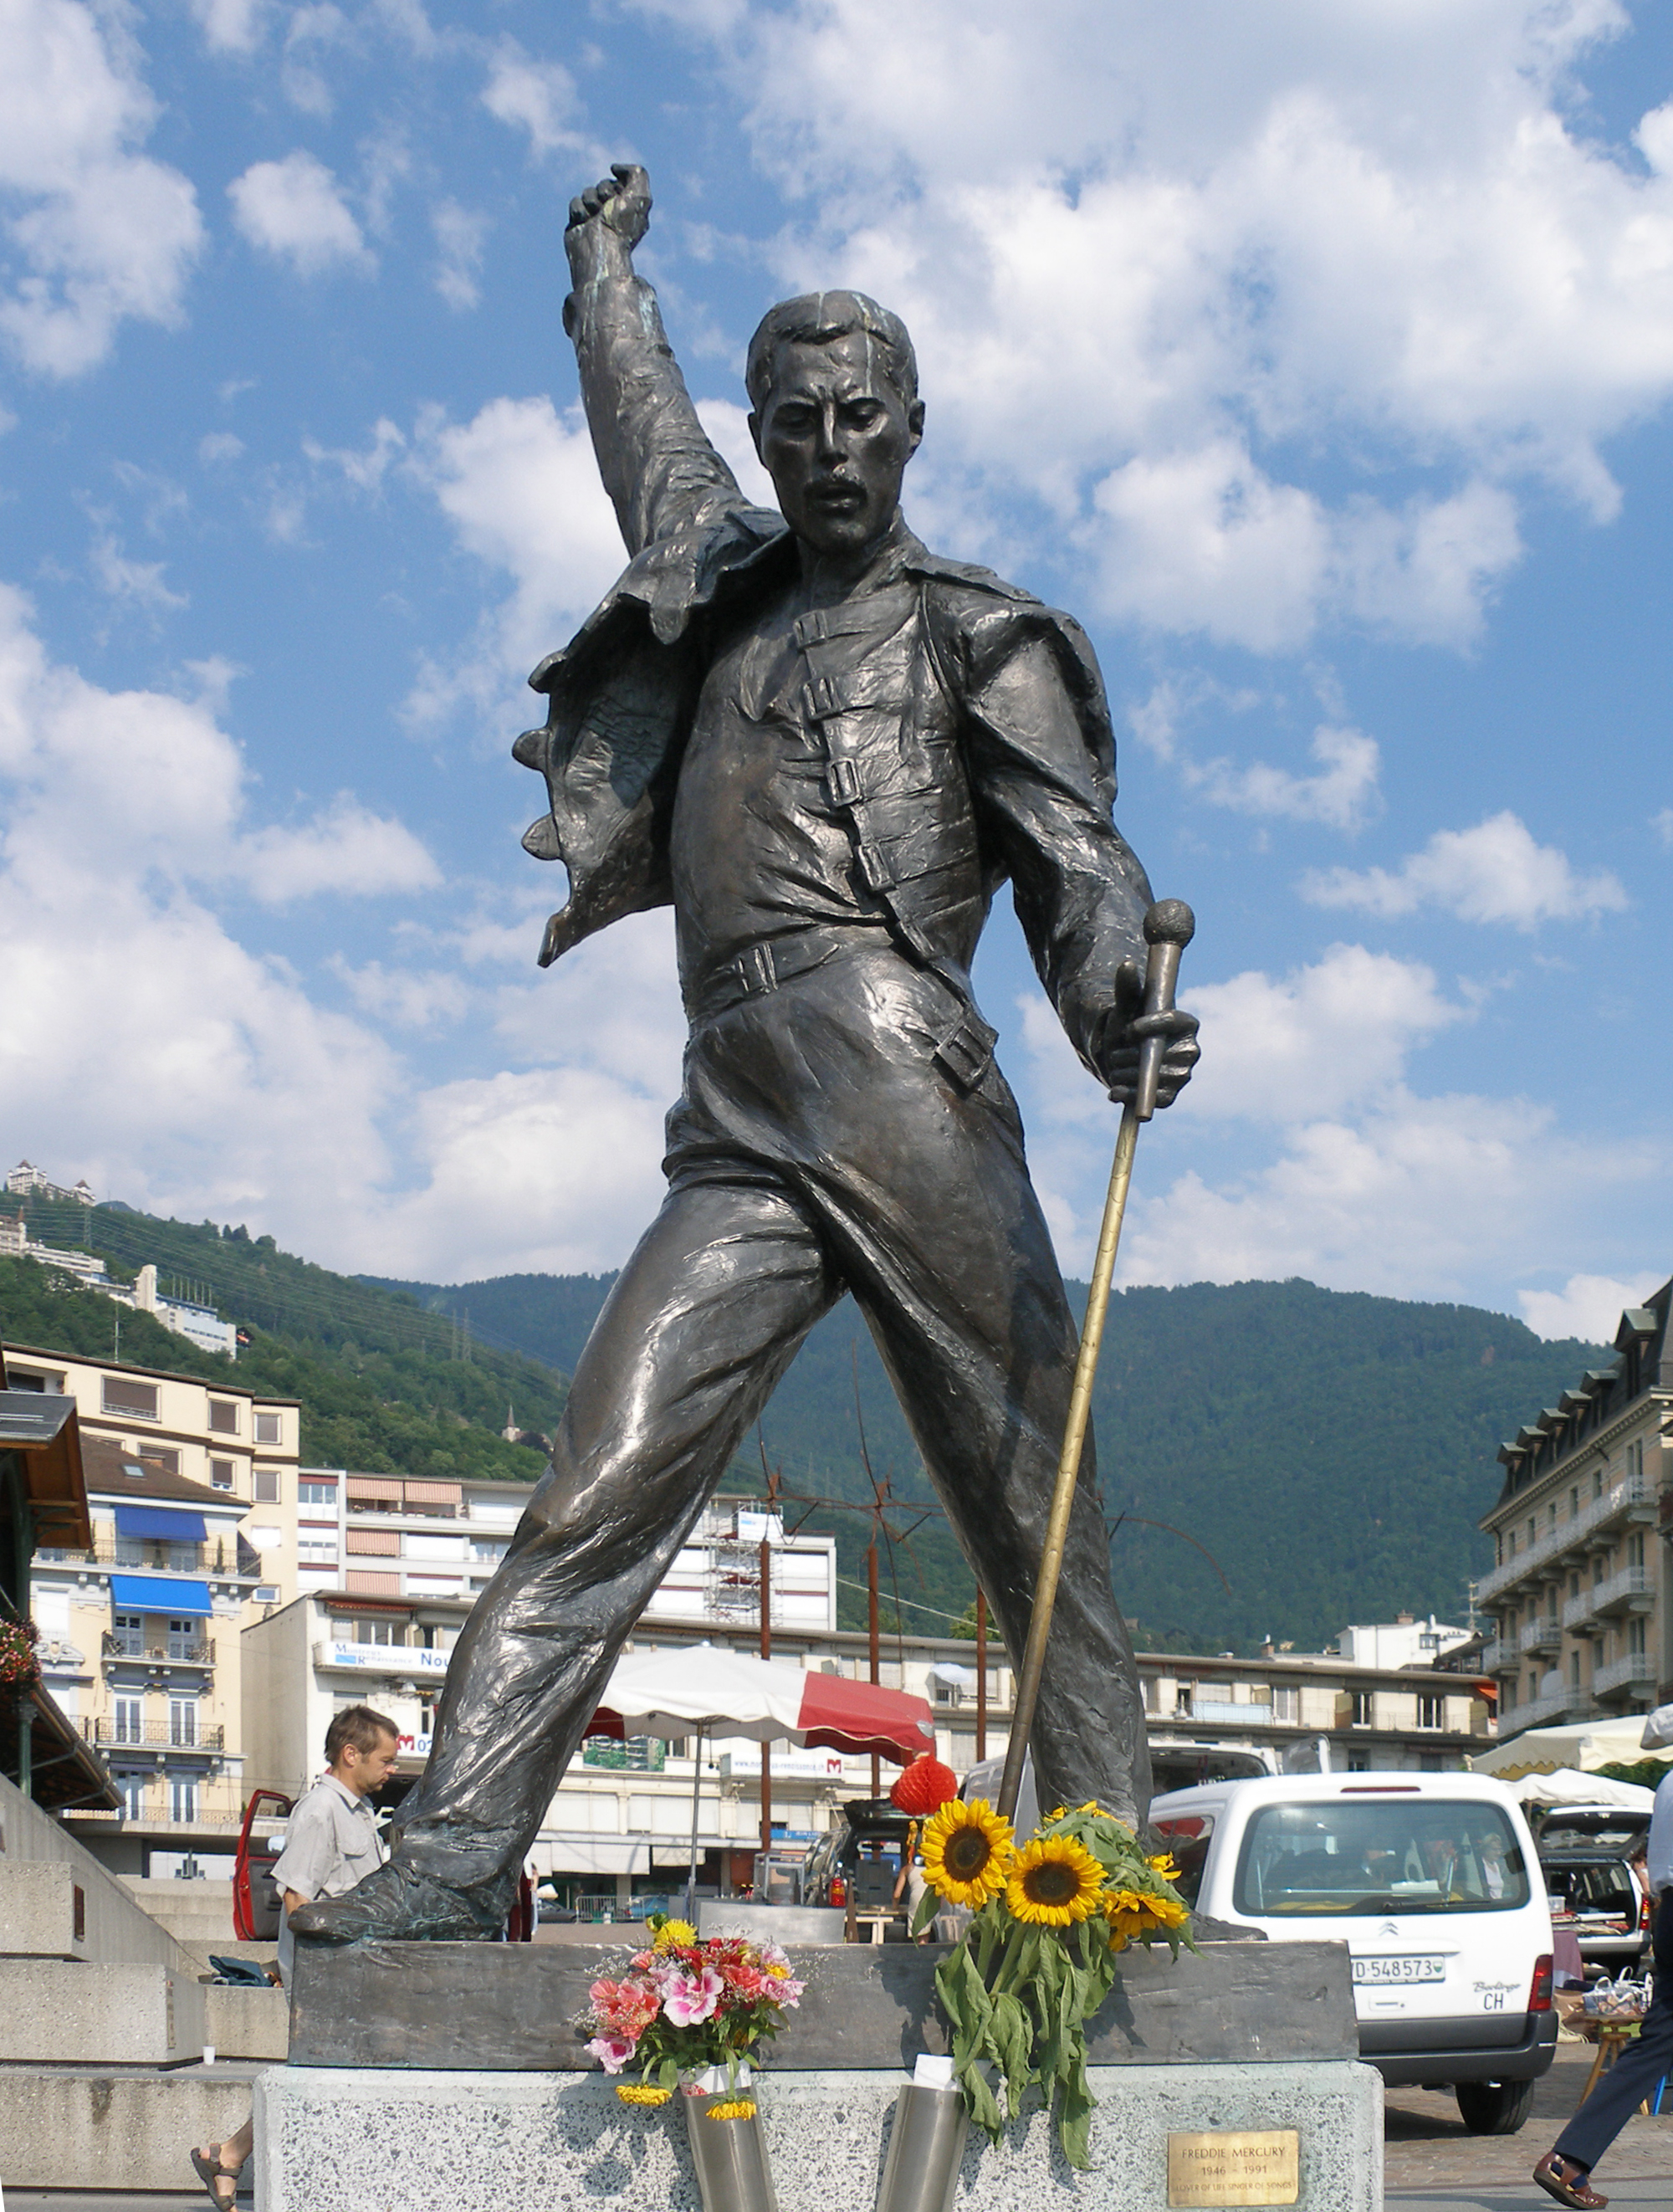 Statue of Freddie Mercury in Montreux 2005-07-15.jpg